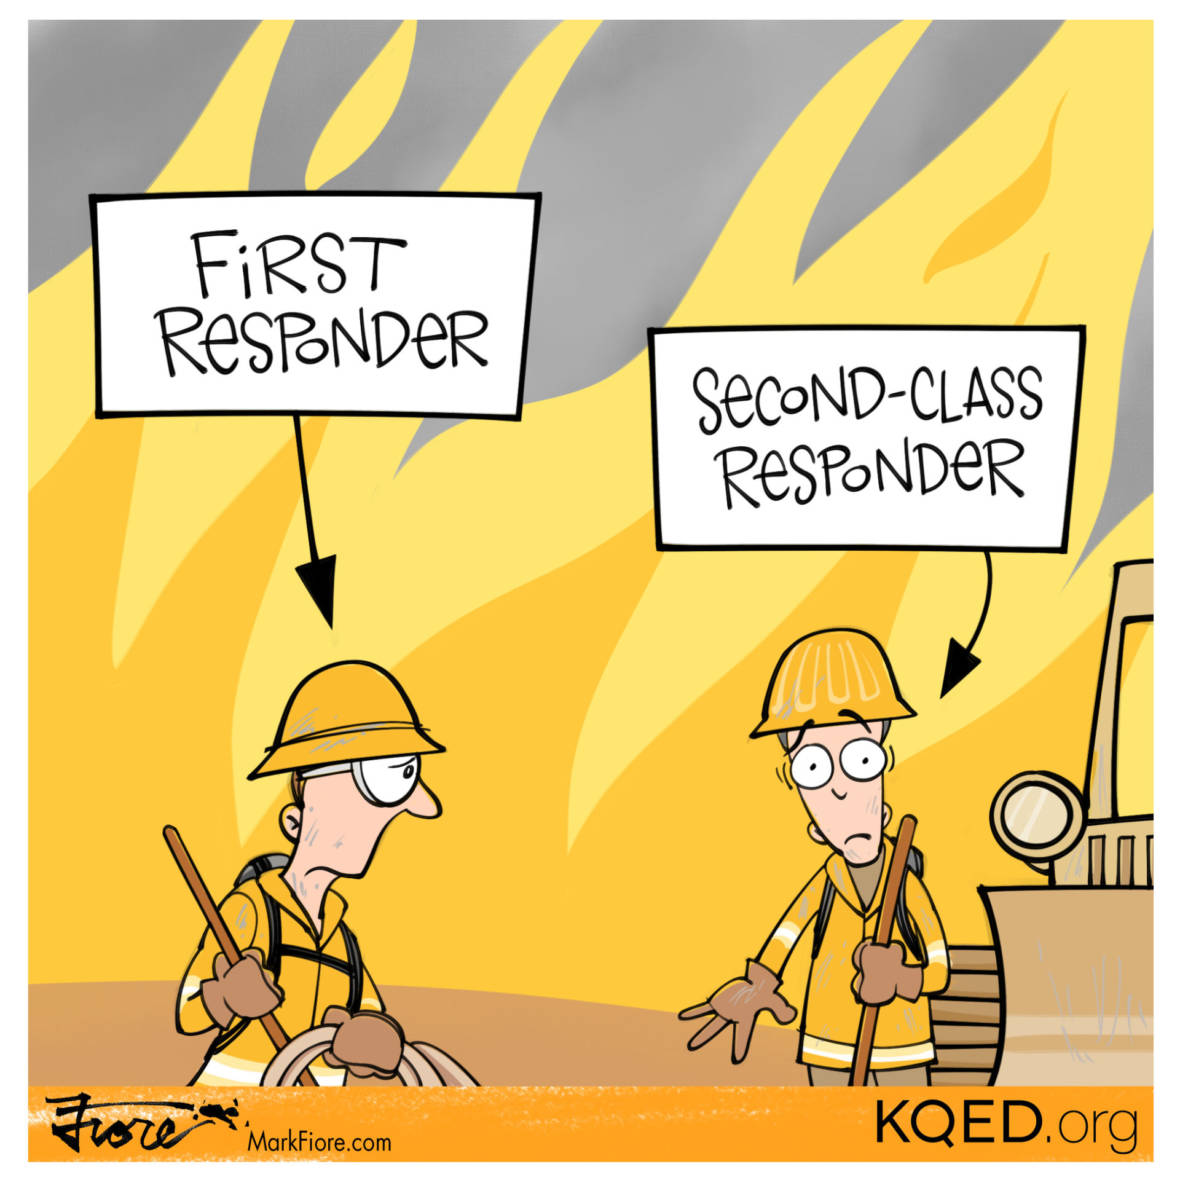 Same Fire, Different Protections